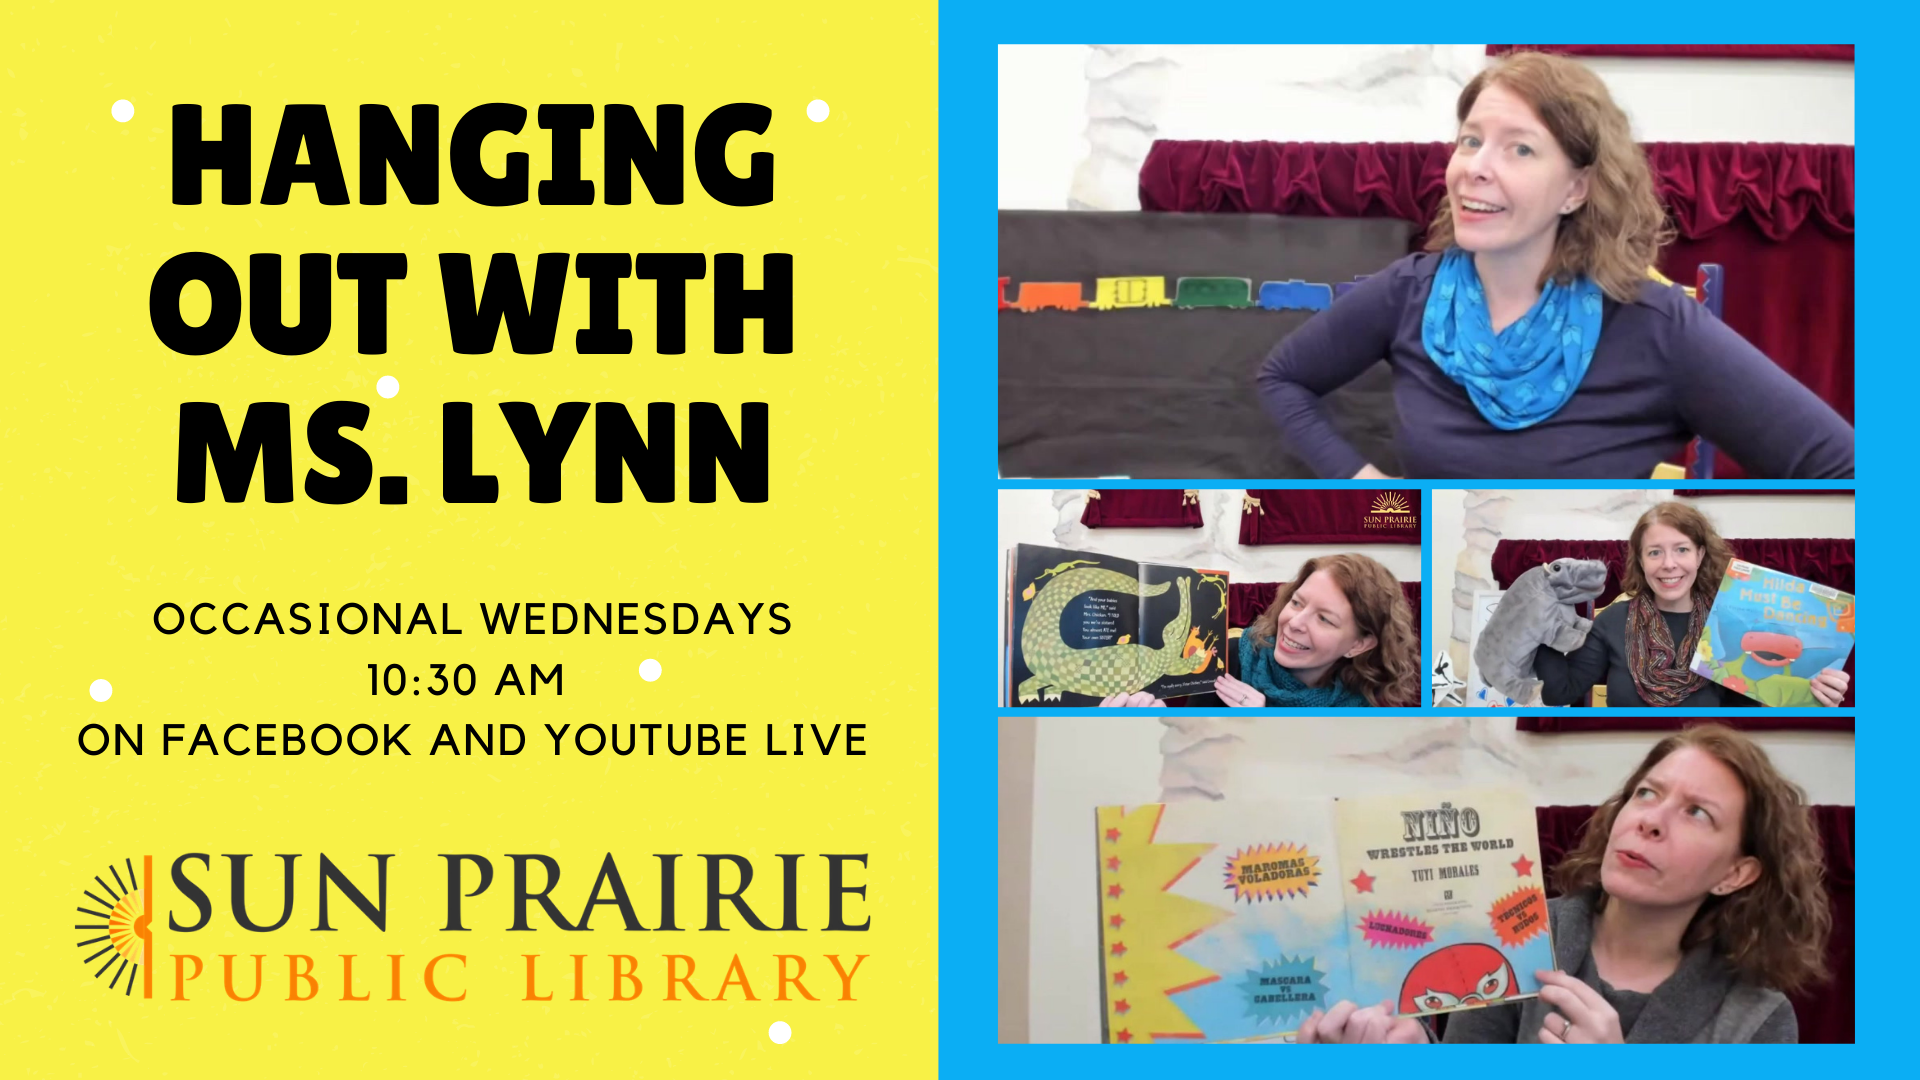 Hanging Out with Ms. Lynn, occasional Wednesdays at 10:30 AM on Facebook and YouTube Live